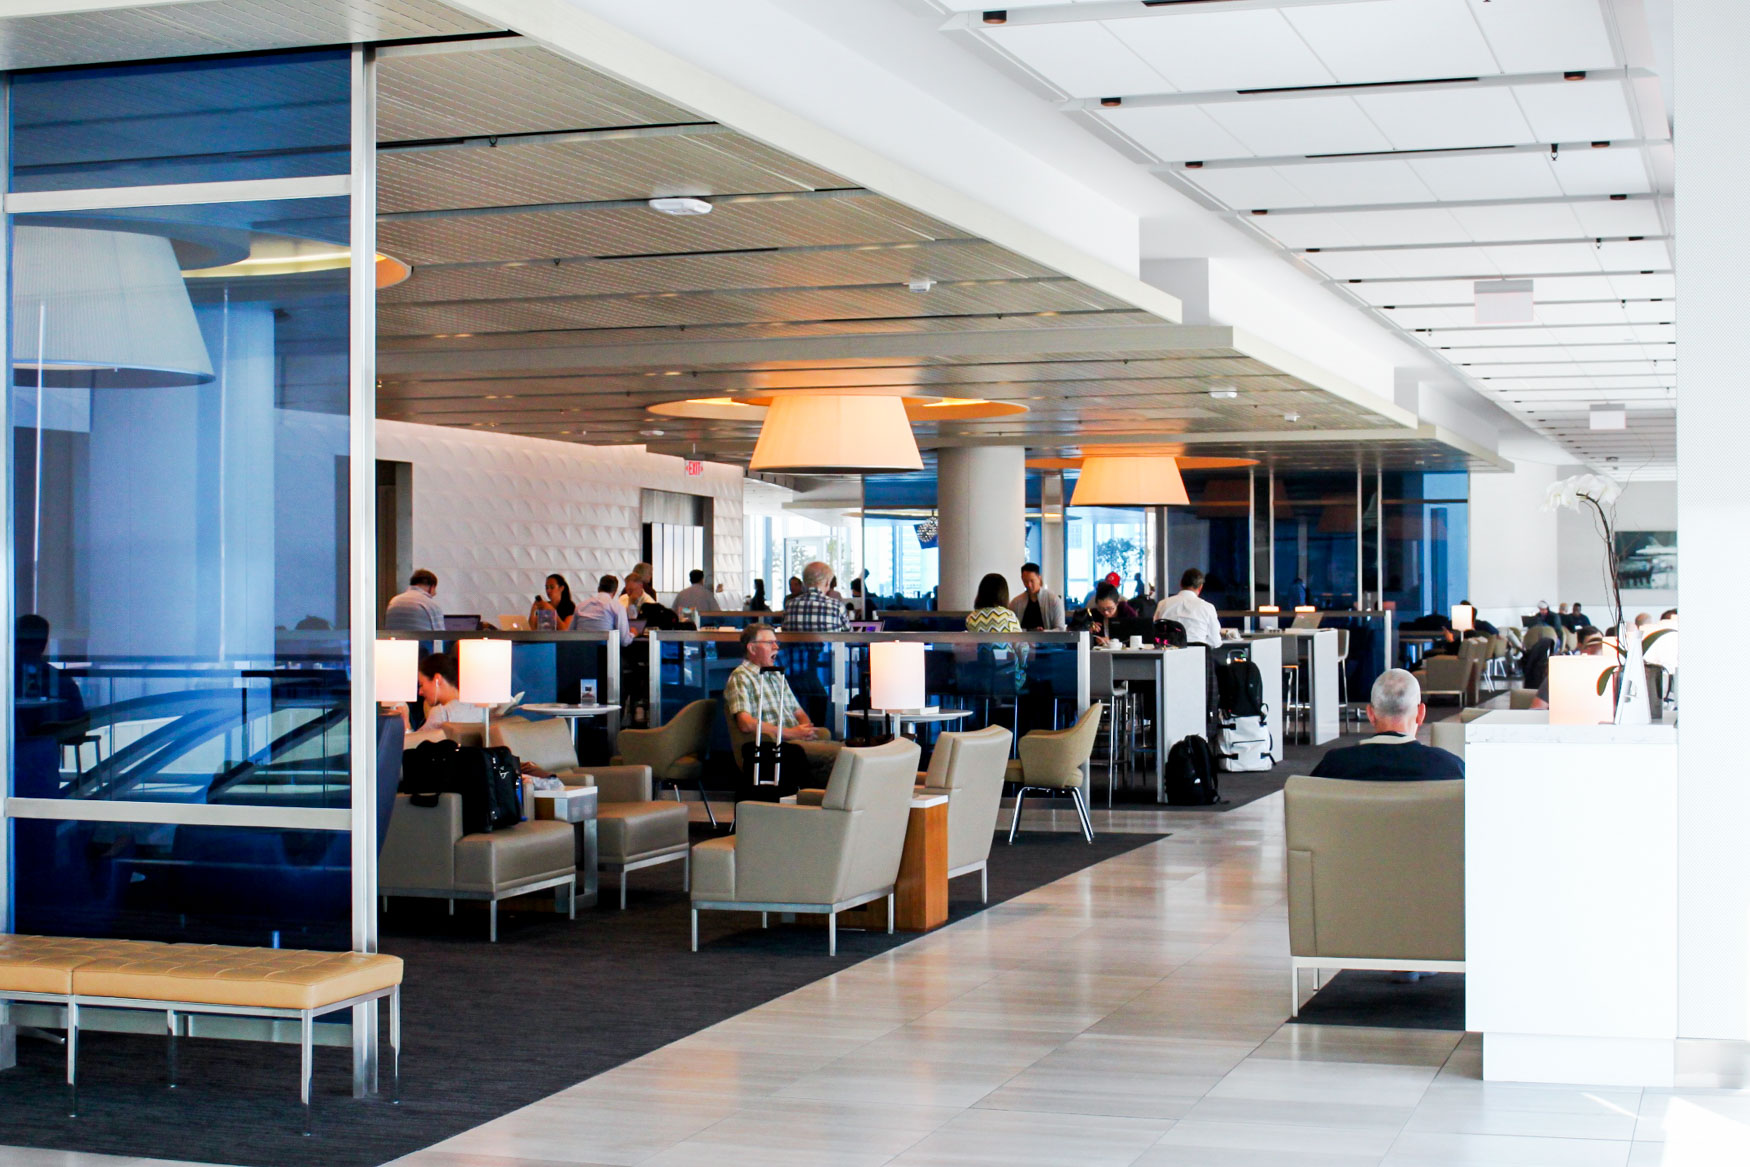 United Club Los Angeles Seating Overview